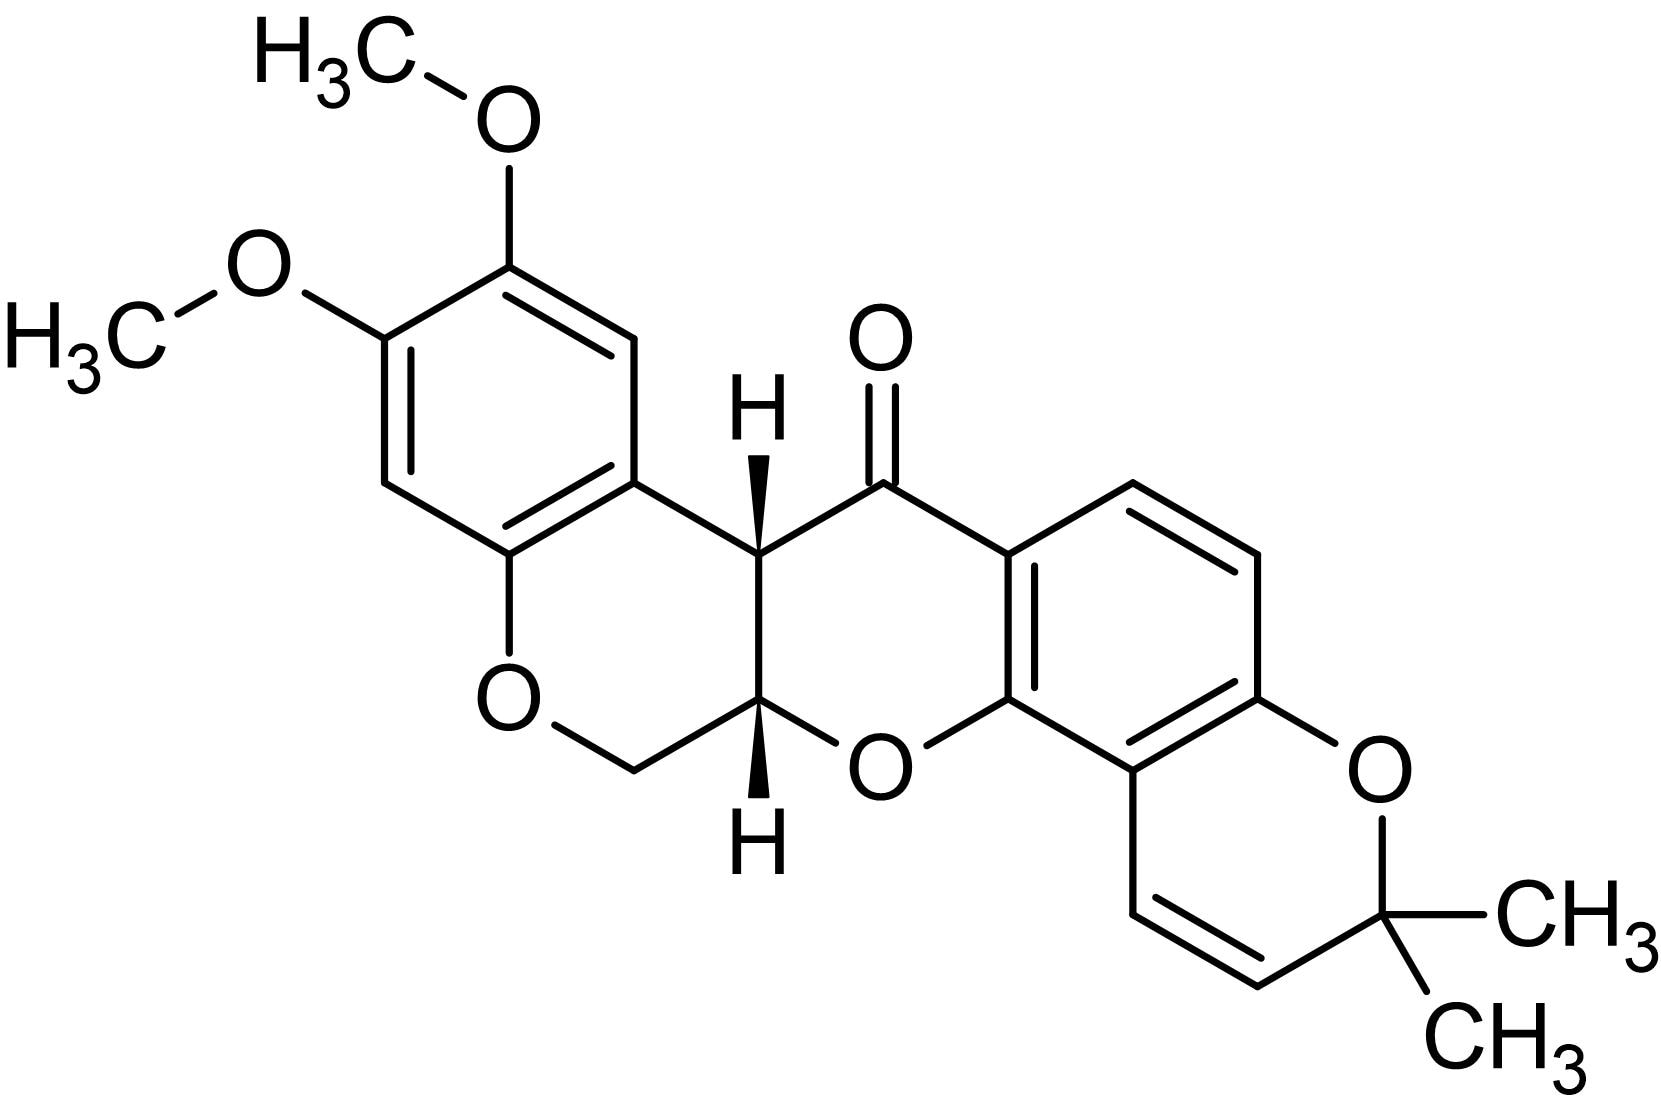 Chemical Structure - (-)-Deguelin, Akt inhibitor (ab120941)